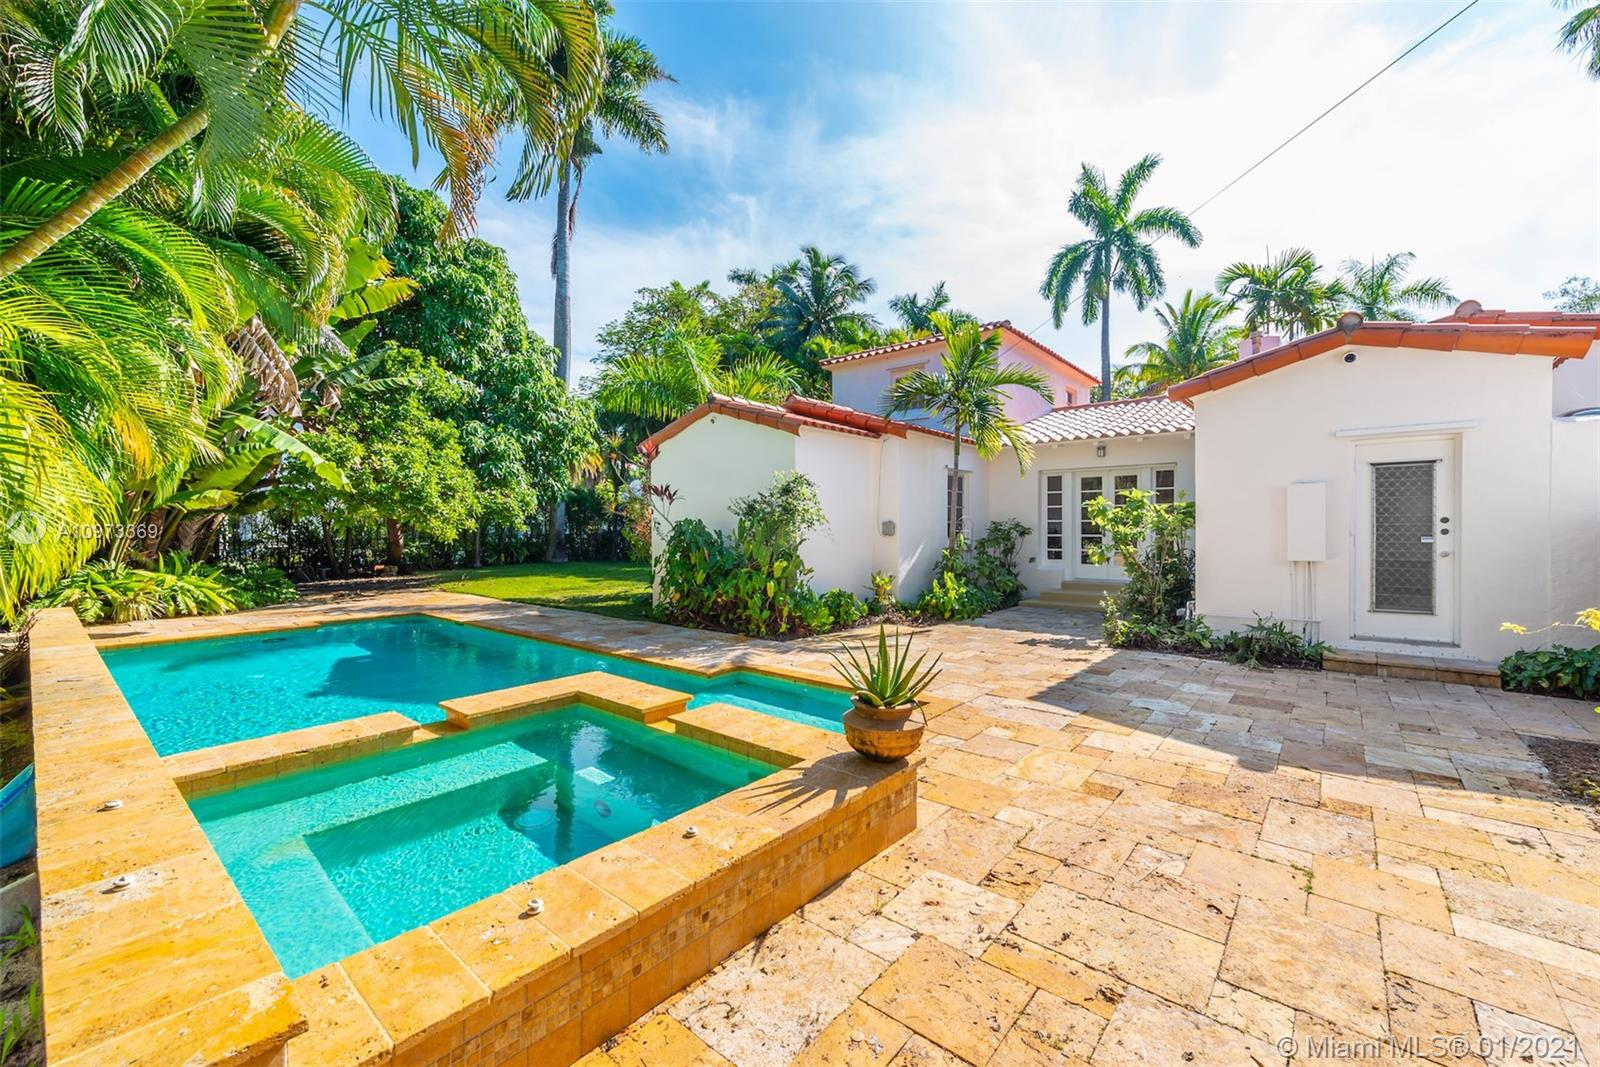 Details for 641 57th St, Miami, FL 33137